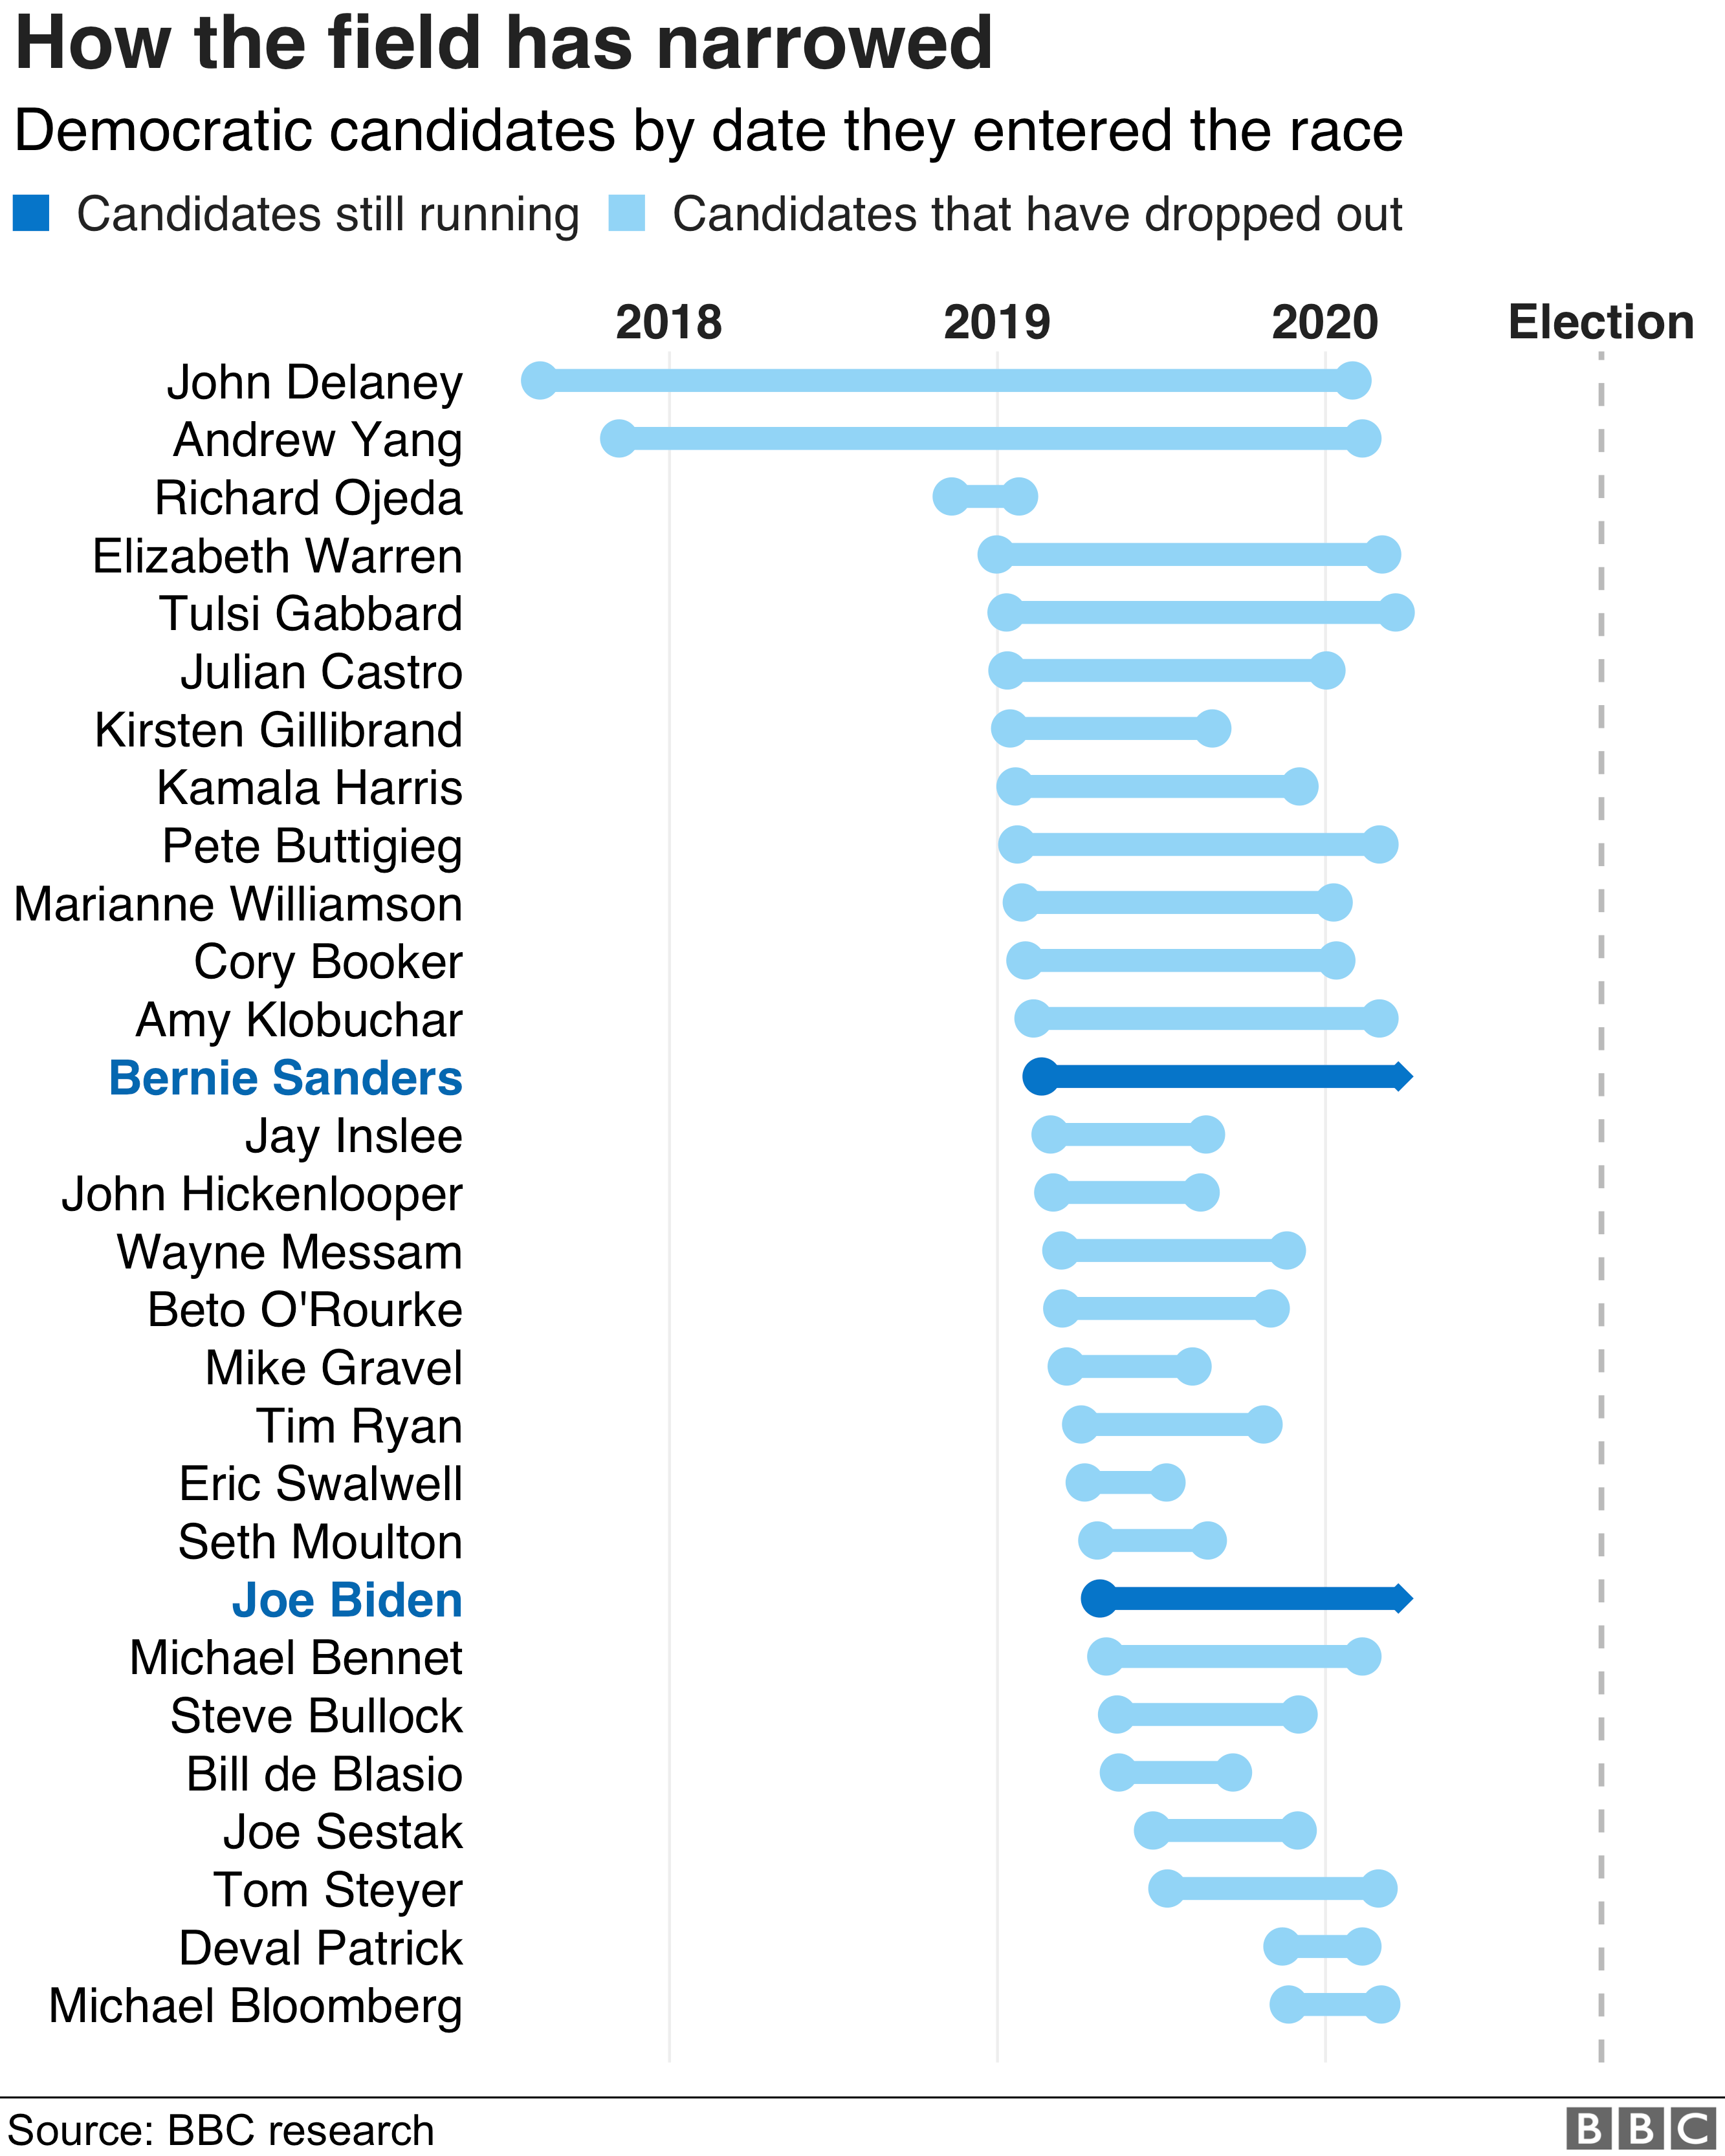 Chart showing when Democratic candidates joined the race and when they dropped out